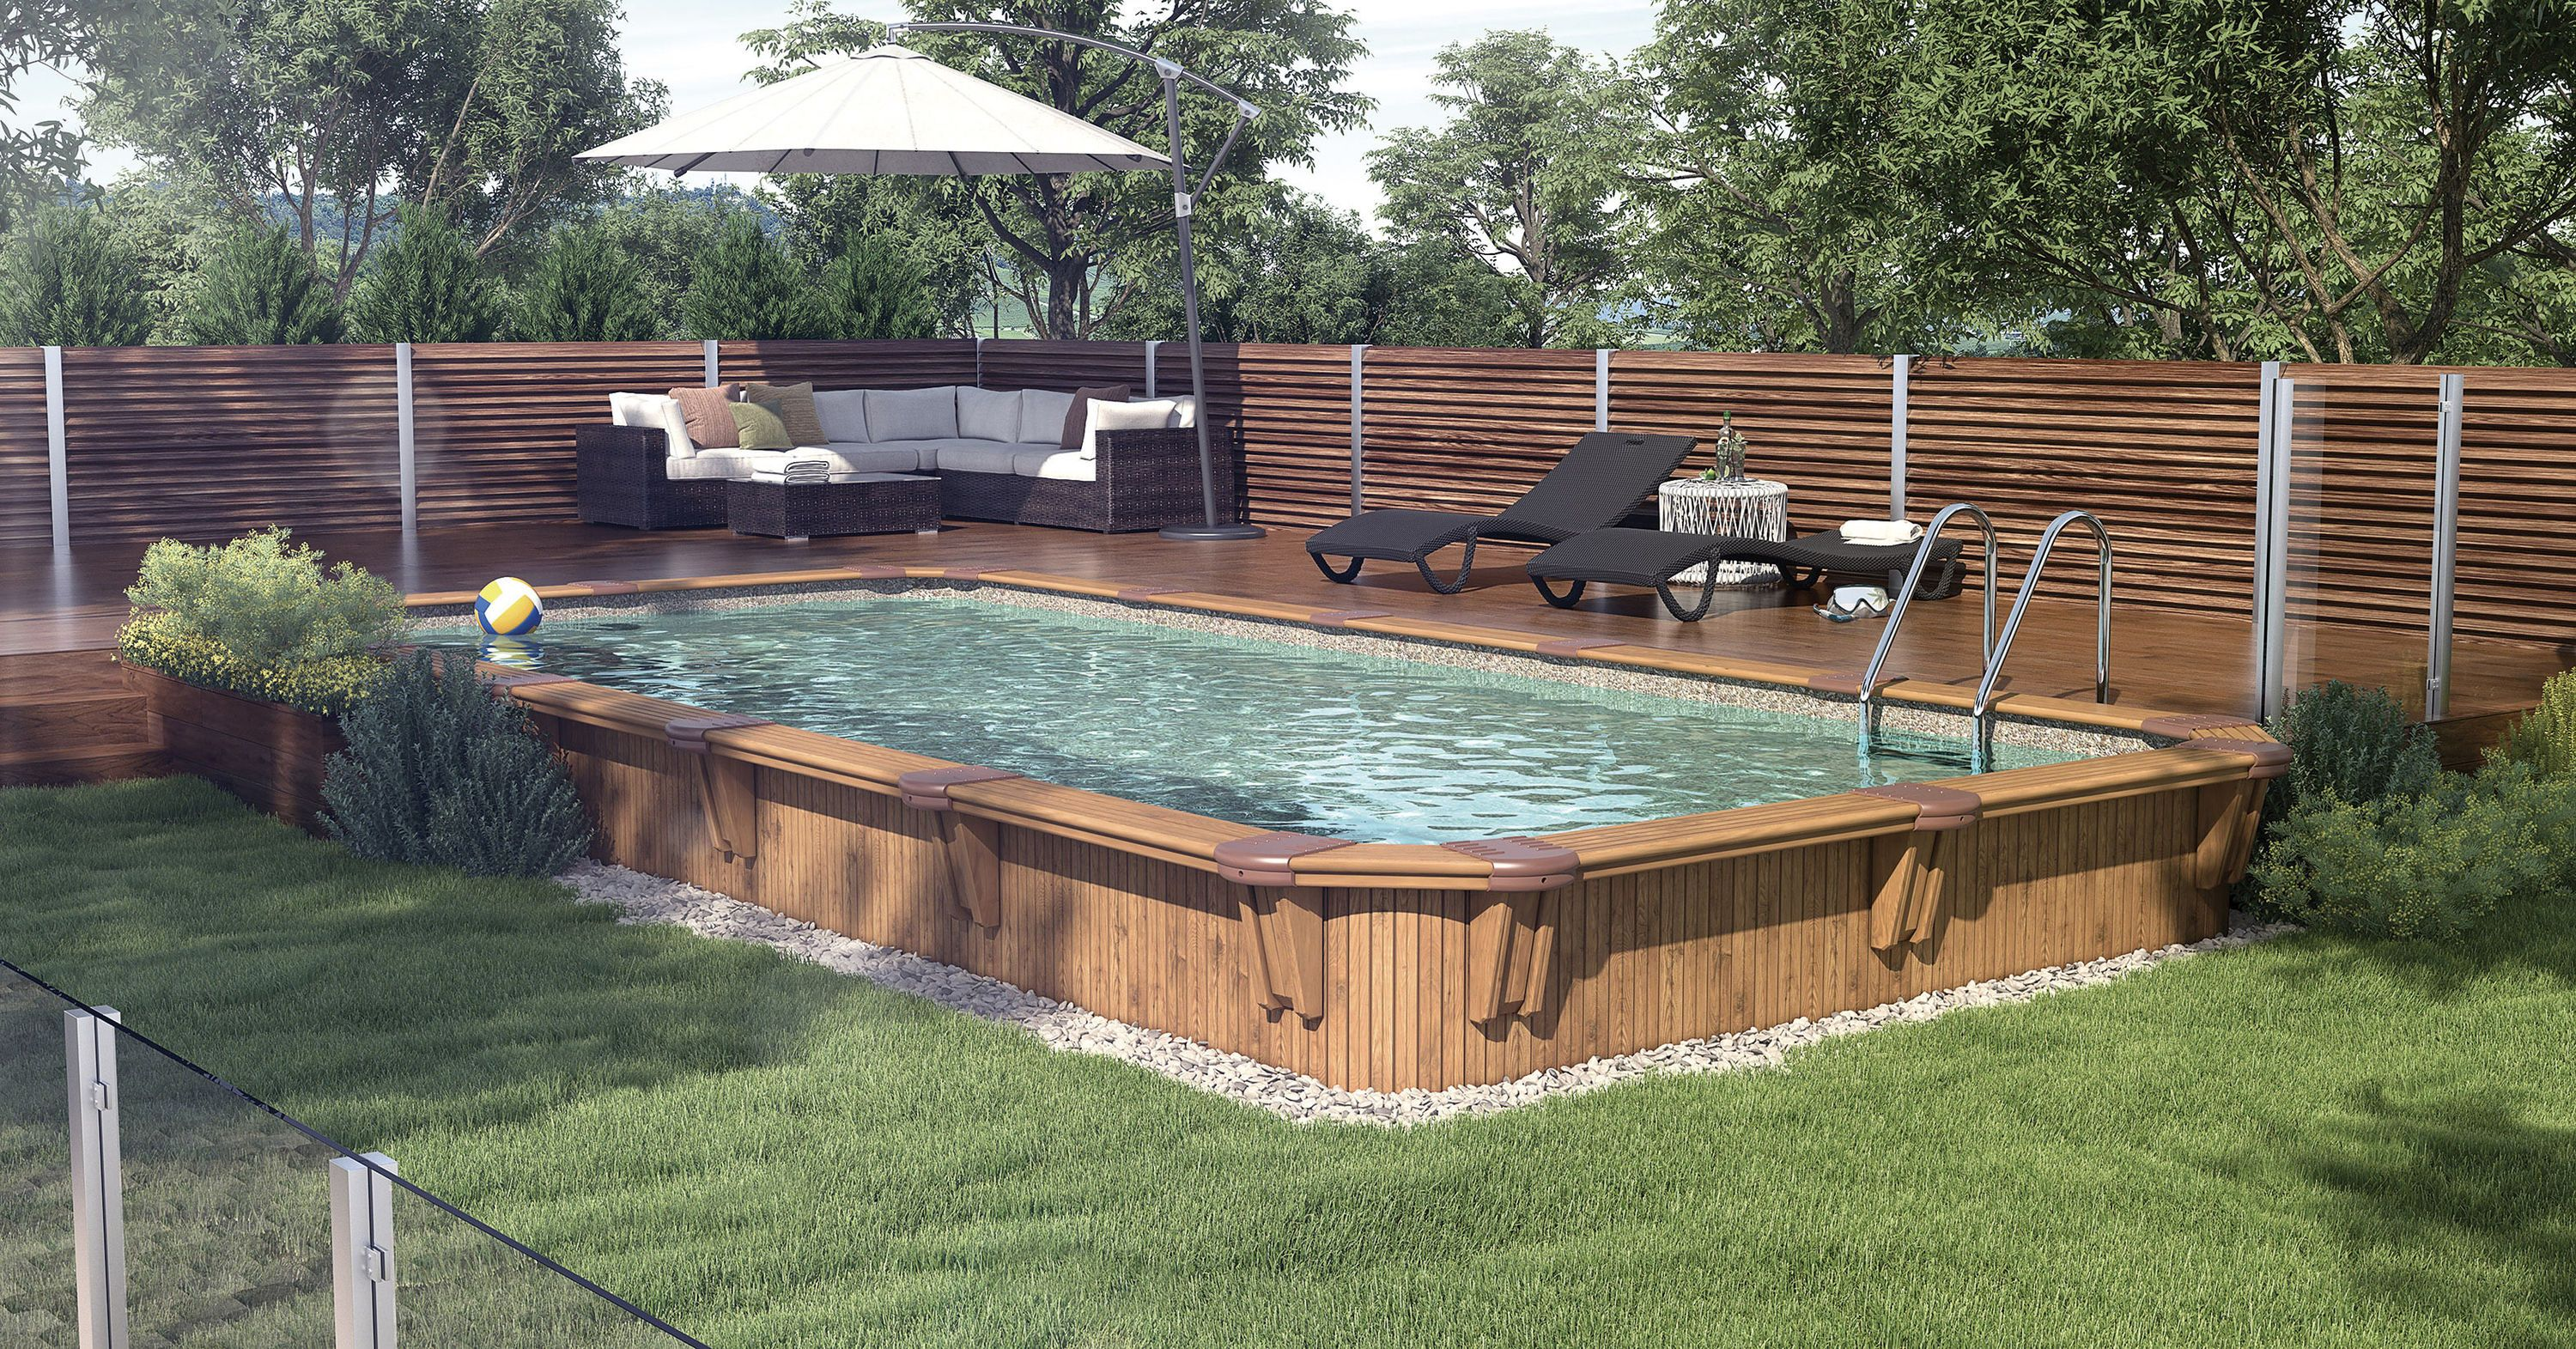 This New Rectangular Pool Sleek Whit Well Defined Lines Will